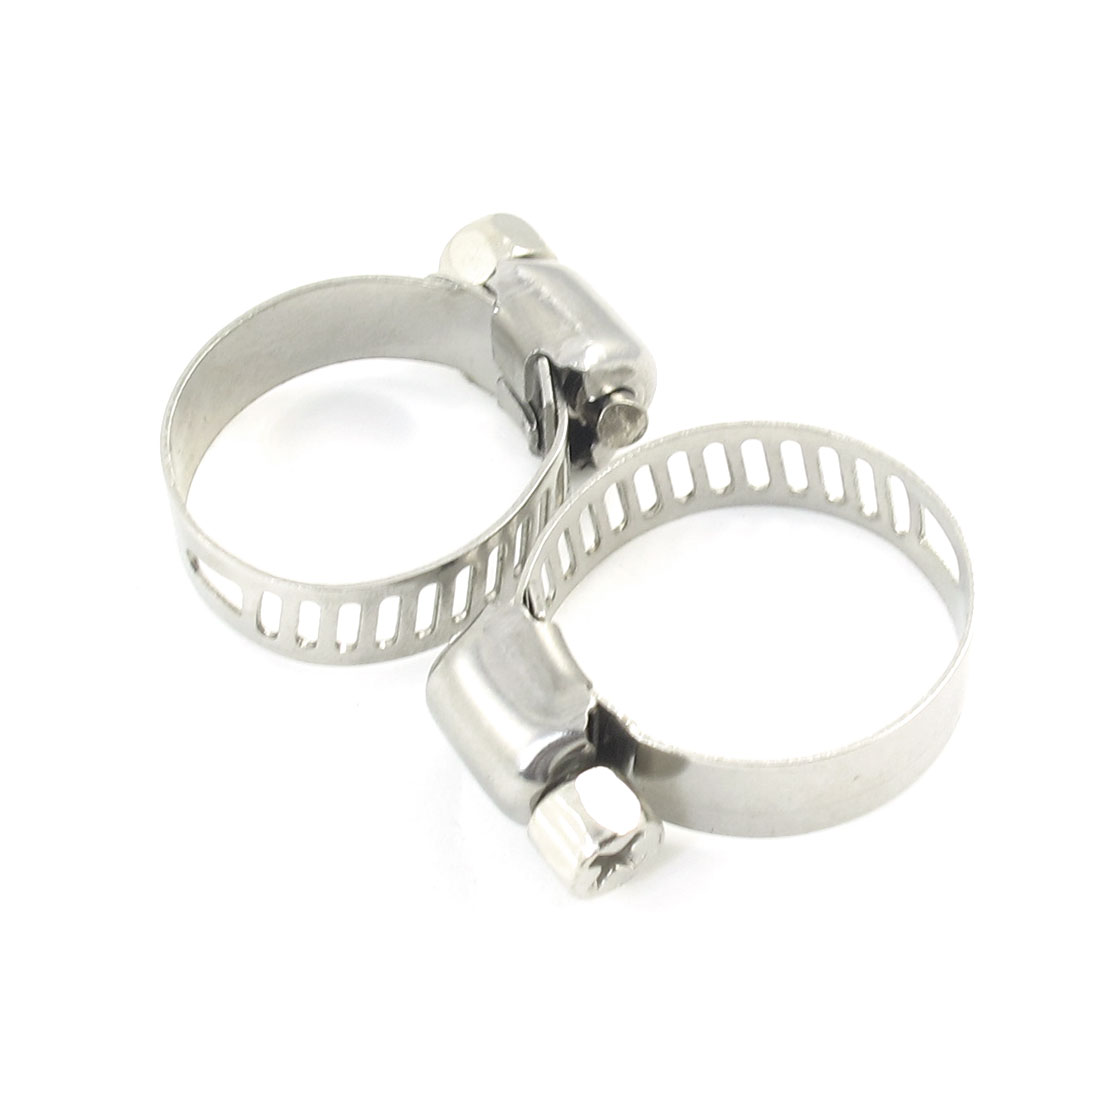 2 Pcs Adjustable 16-25mm Range Metal Worm Drive Hose Clamps Clamp